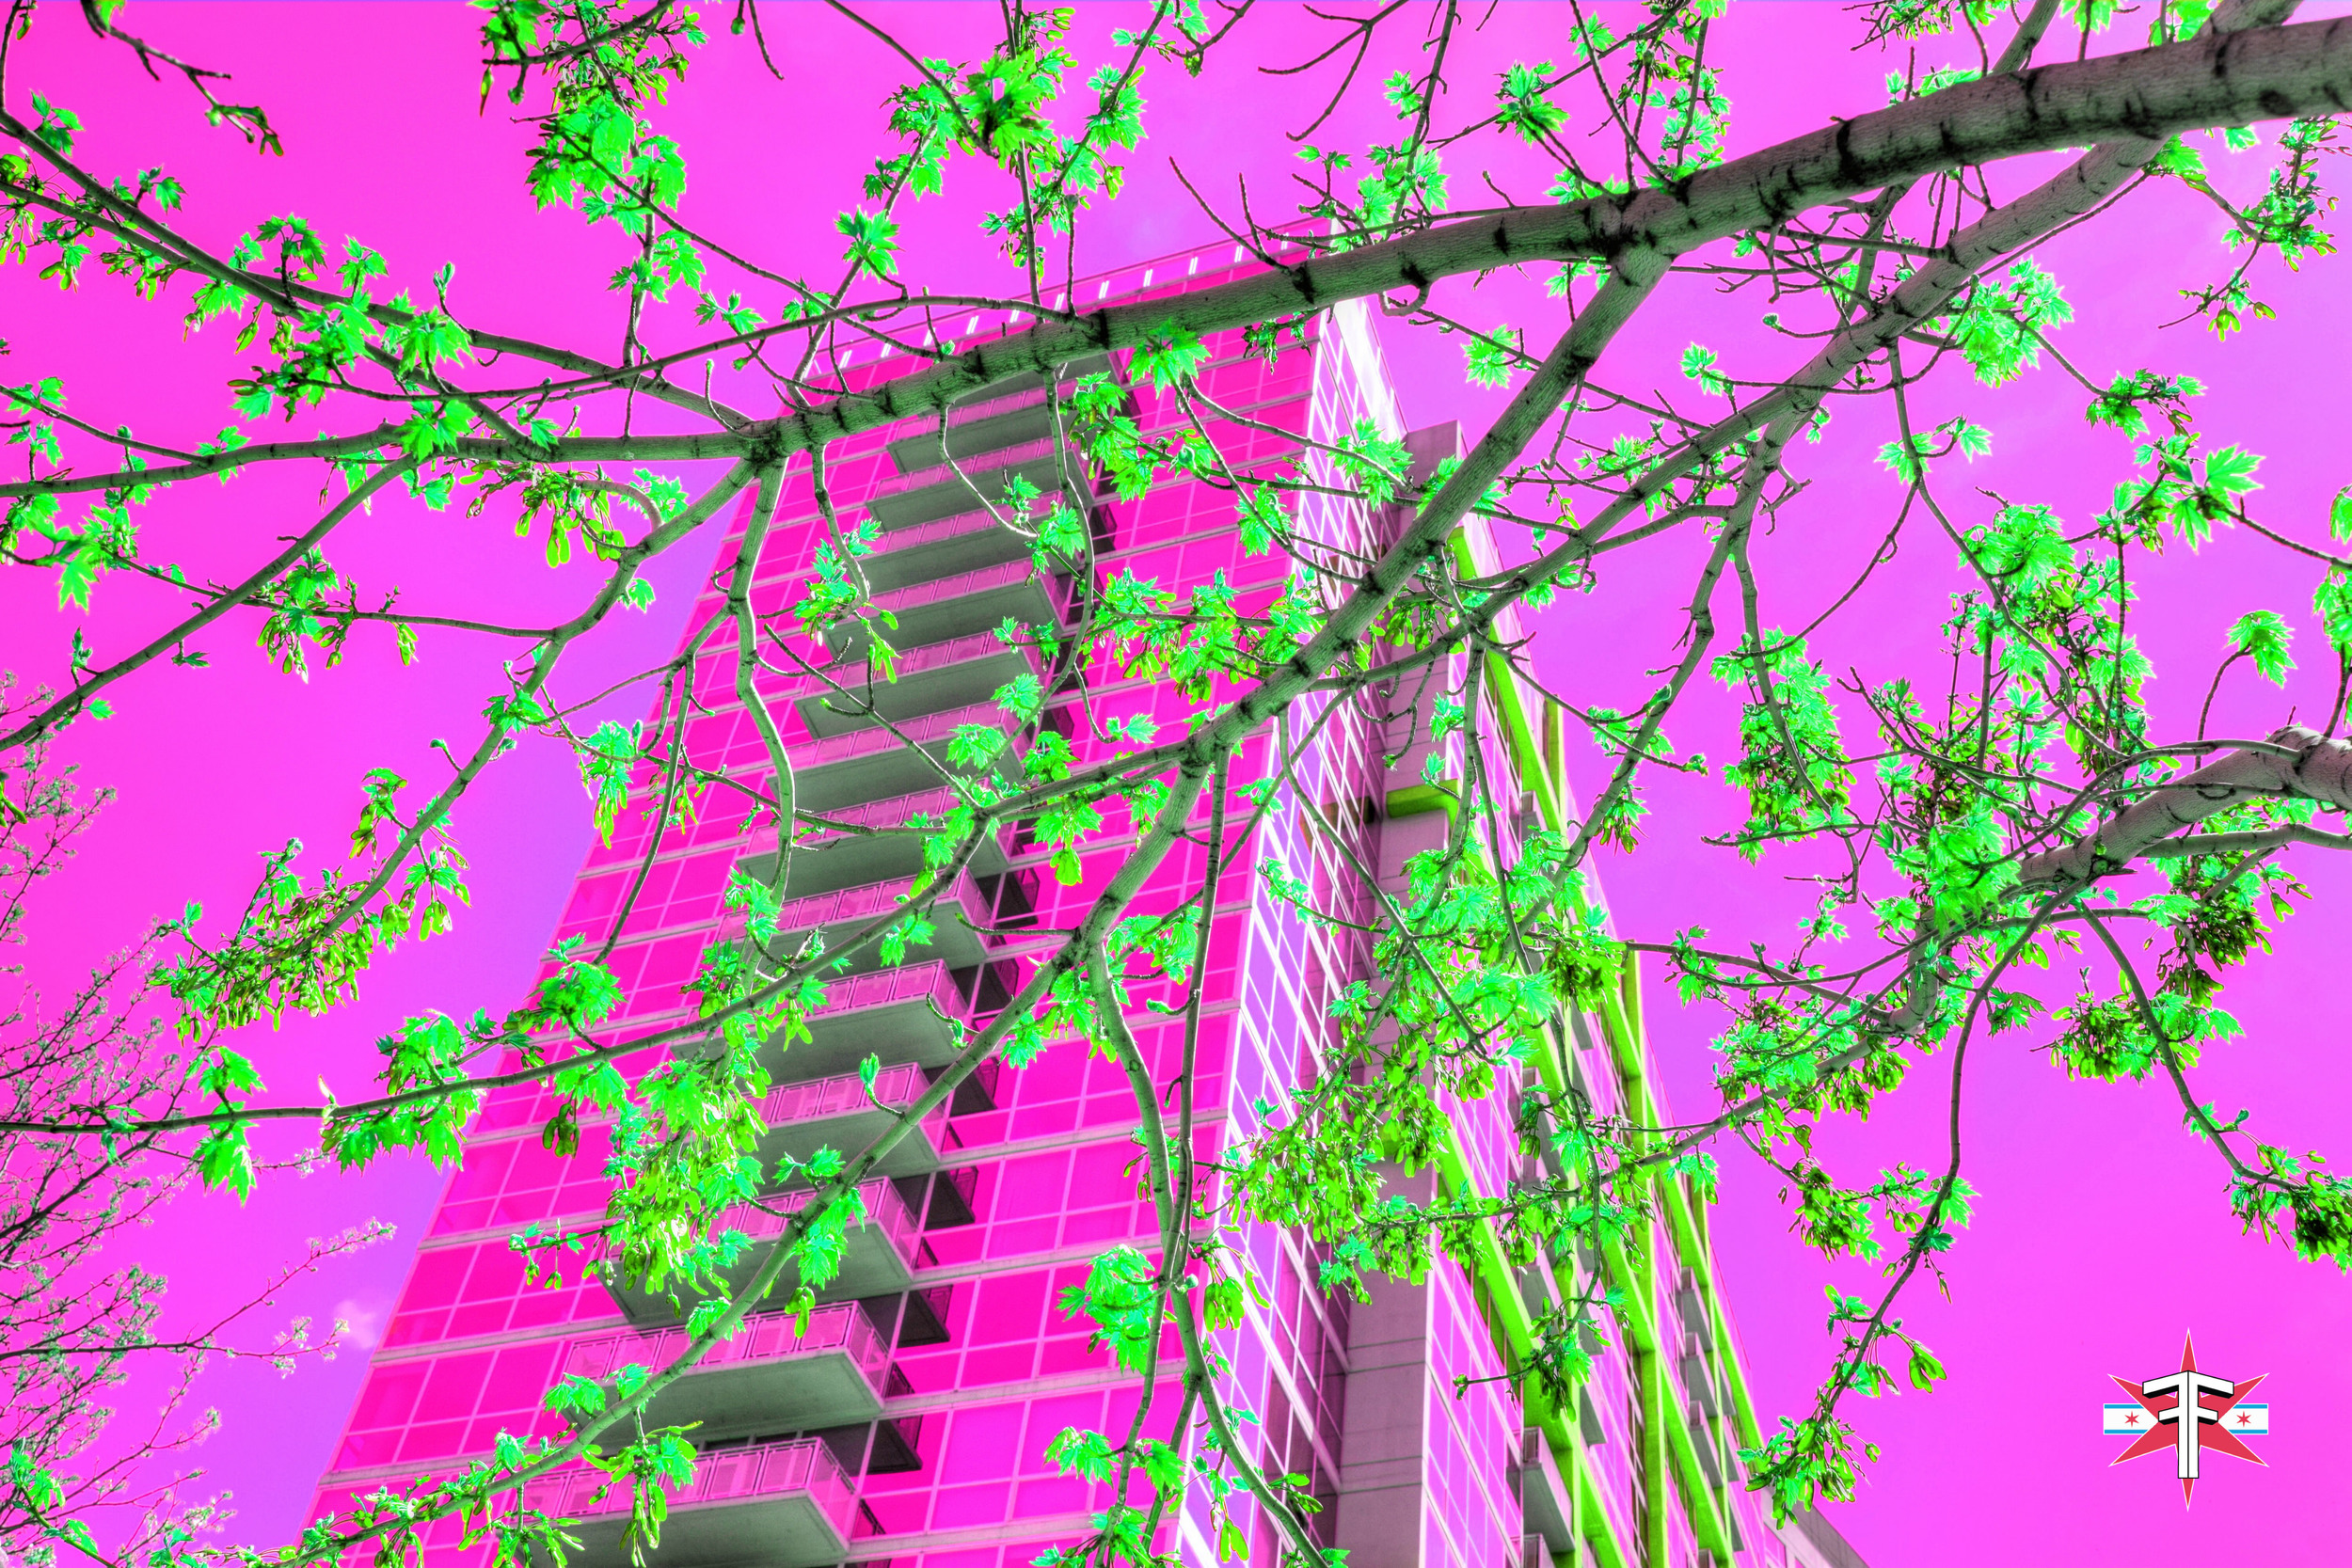 chicago art abstract eric formato photography color travel cityscape architecture saturated citycapes bright vibrant artistic-79.jpg